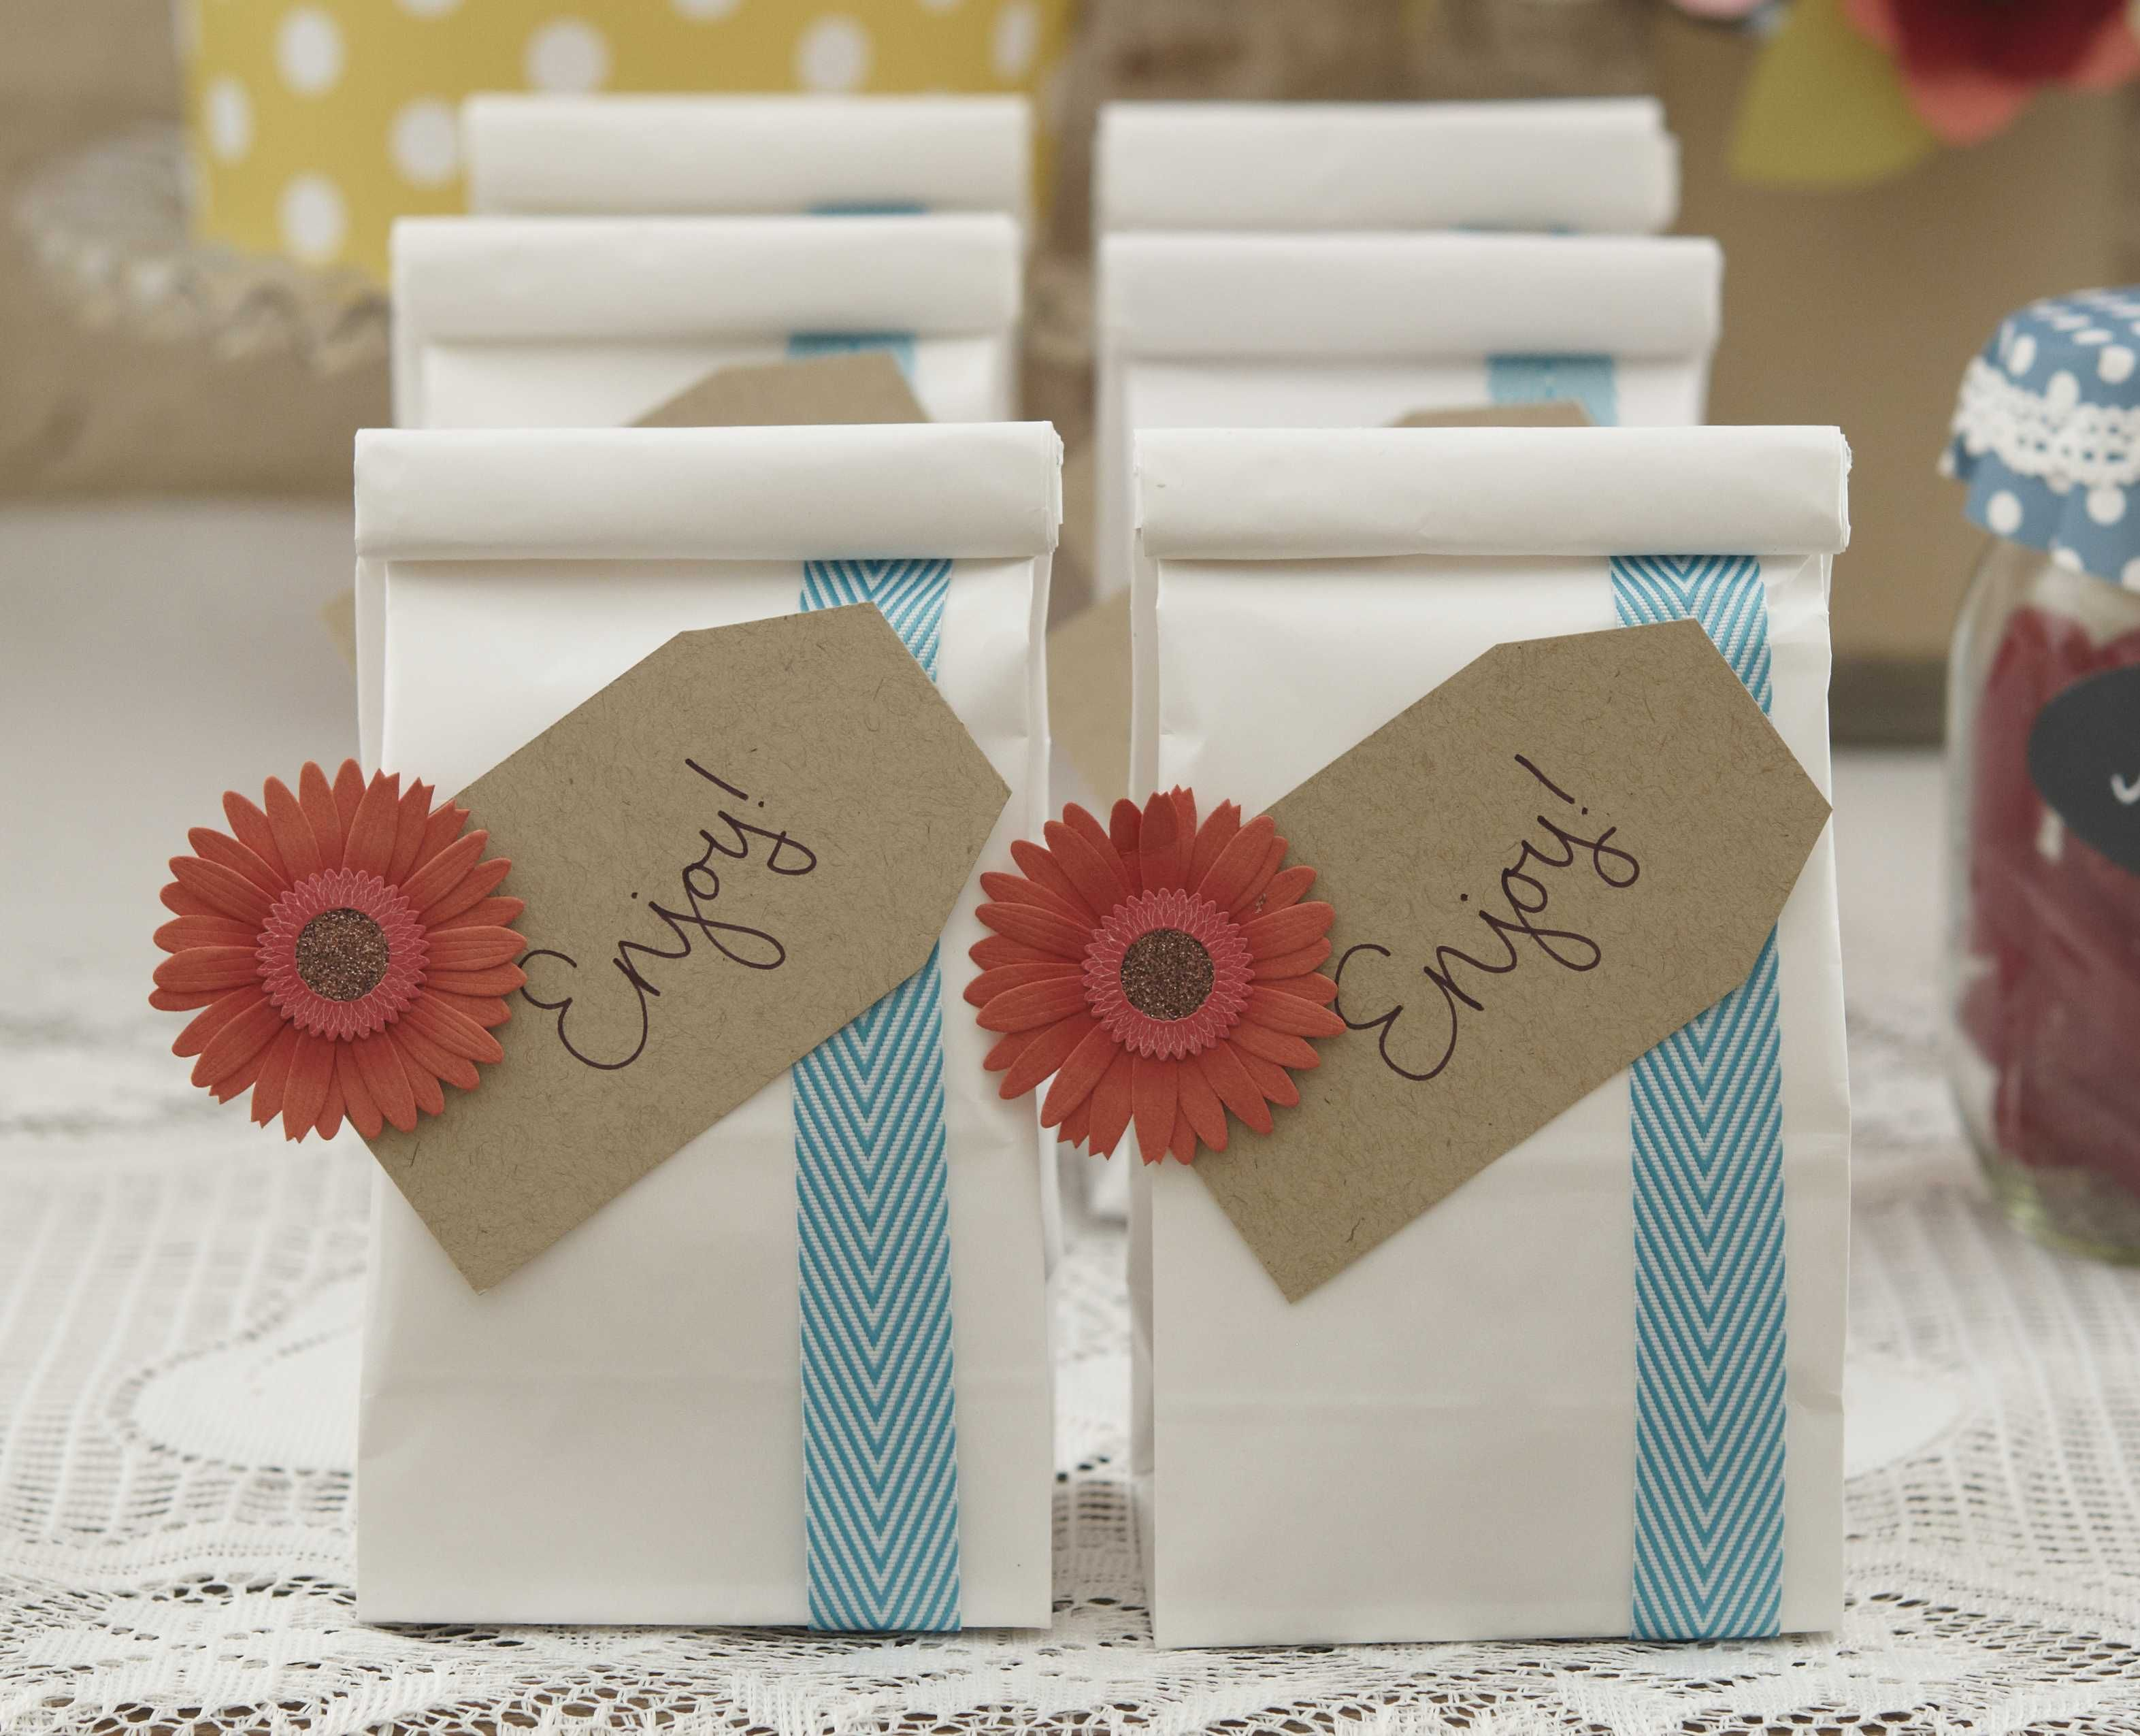 Diy #Favor Bags #Giftwrapping #Giftwrap #Presents #Gift #Diy #Simple #Cute